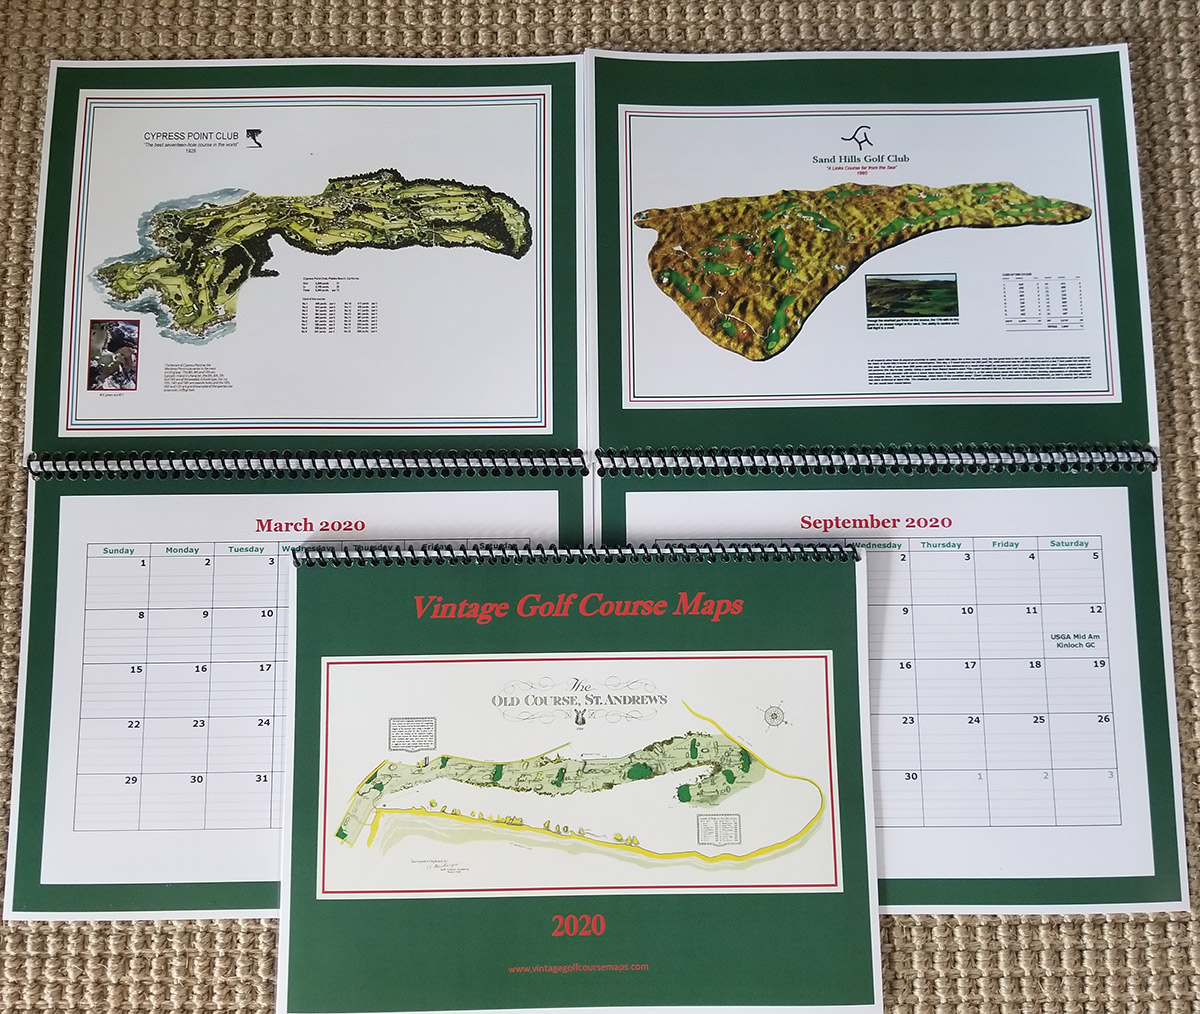 Vintage Golf Course Map Calendar 2020